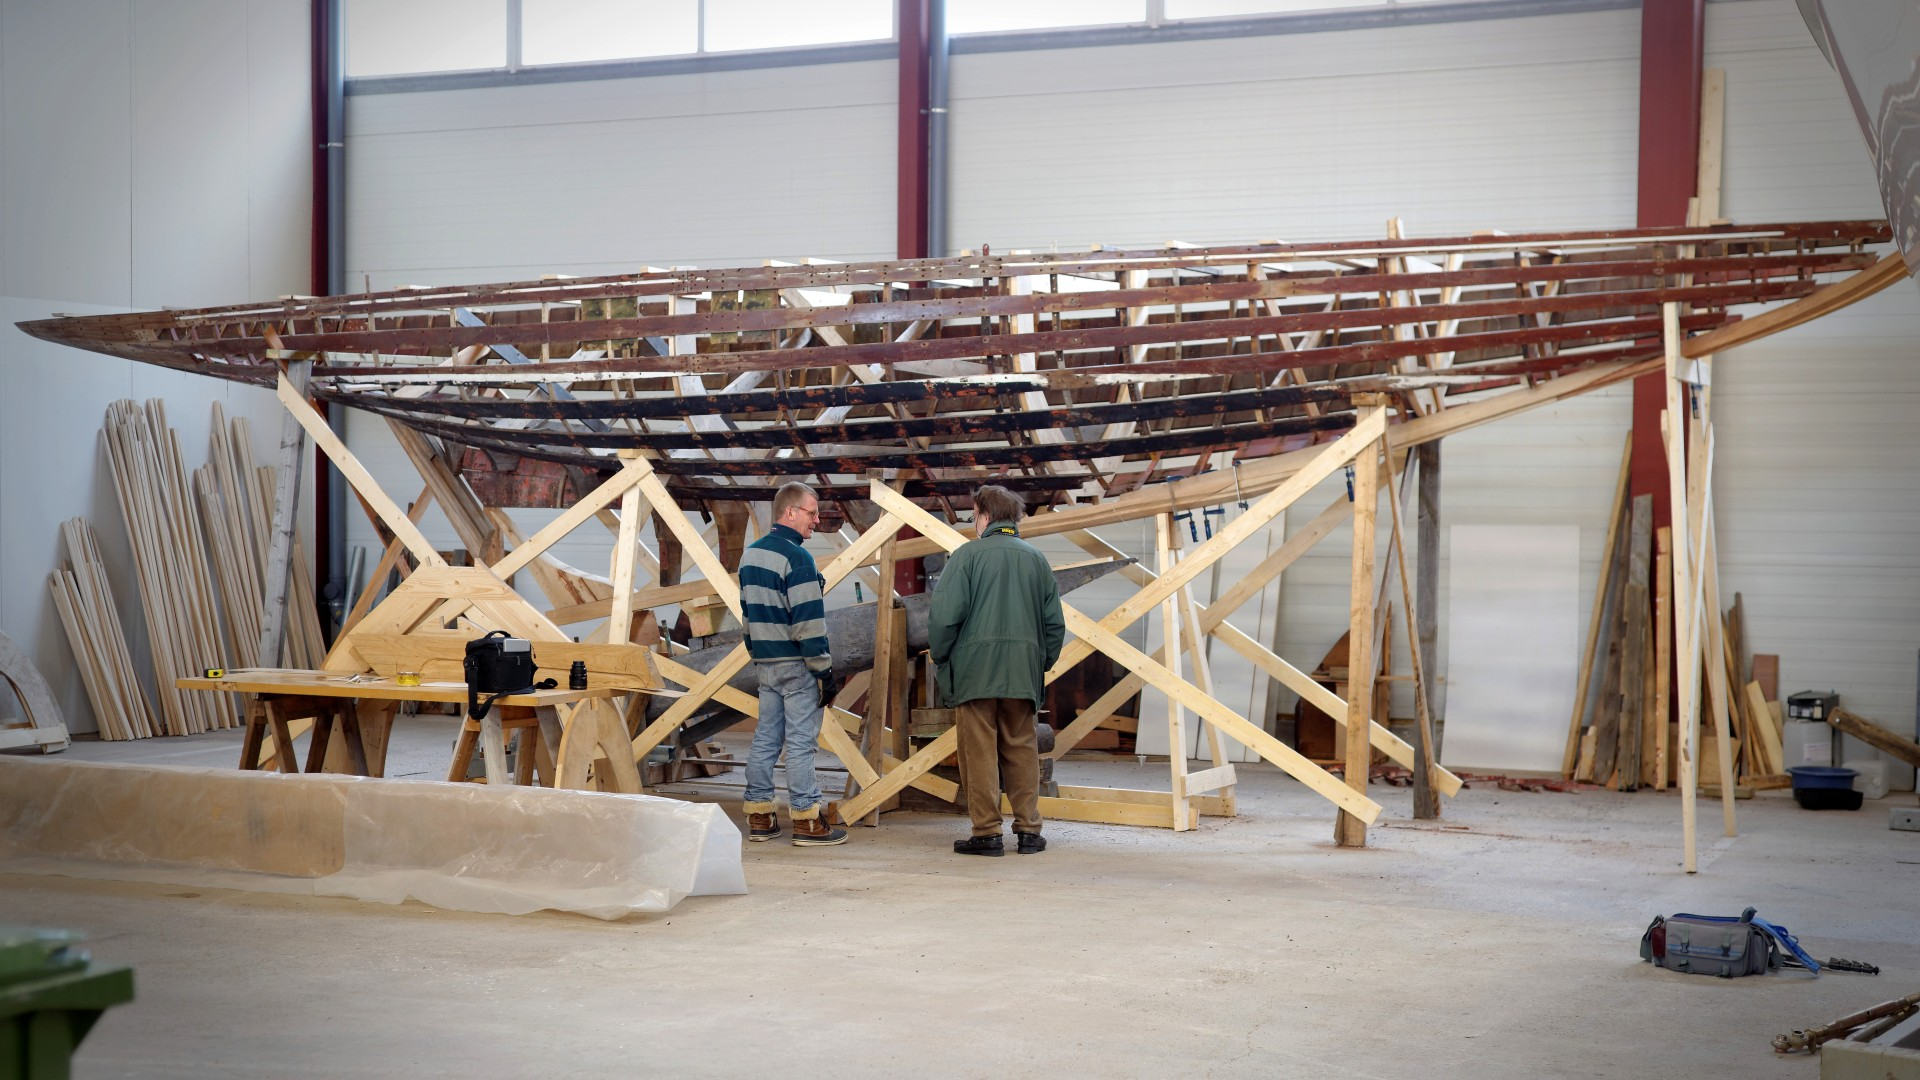 Visited Peter Granström at Tammisaaren Veneveistämö for the third time to follow up with progress of restoration of the 6mR Renata. At the moment the hull looks like a skeleton, which is getting a new spine as the new keel stock and stem are being installed. A lot of caution is also set in restoring […]